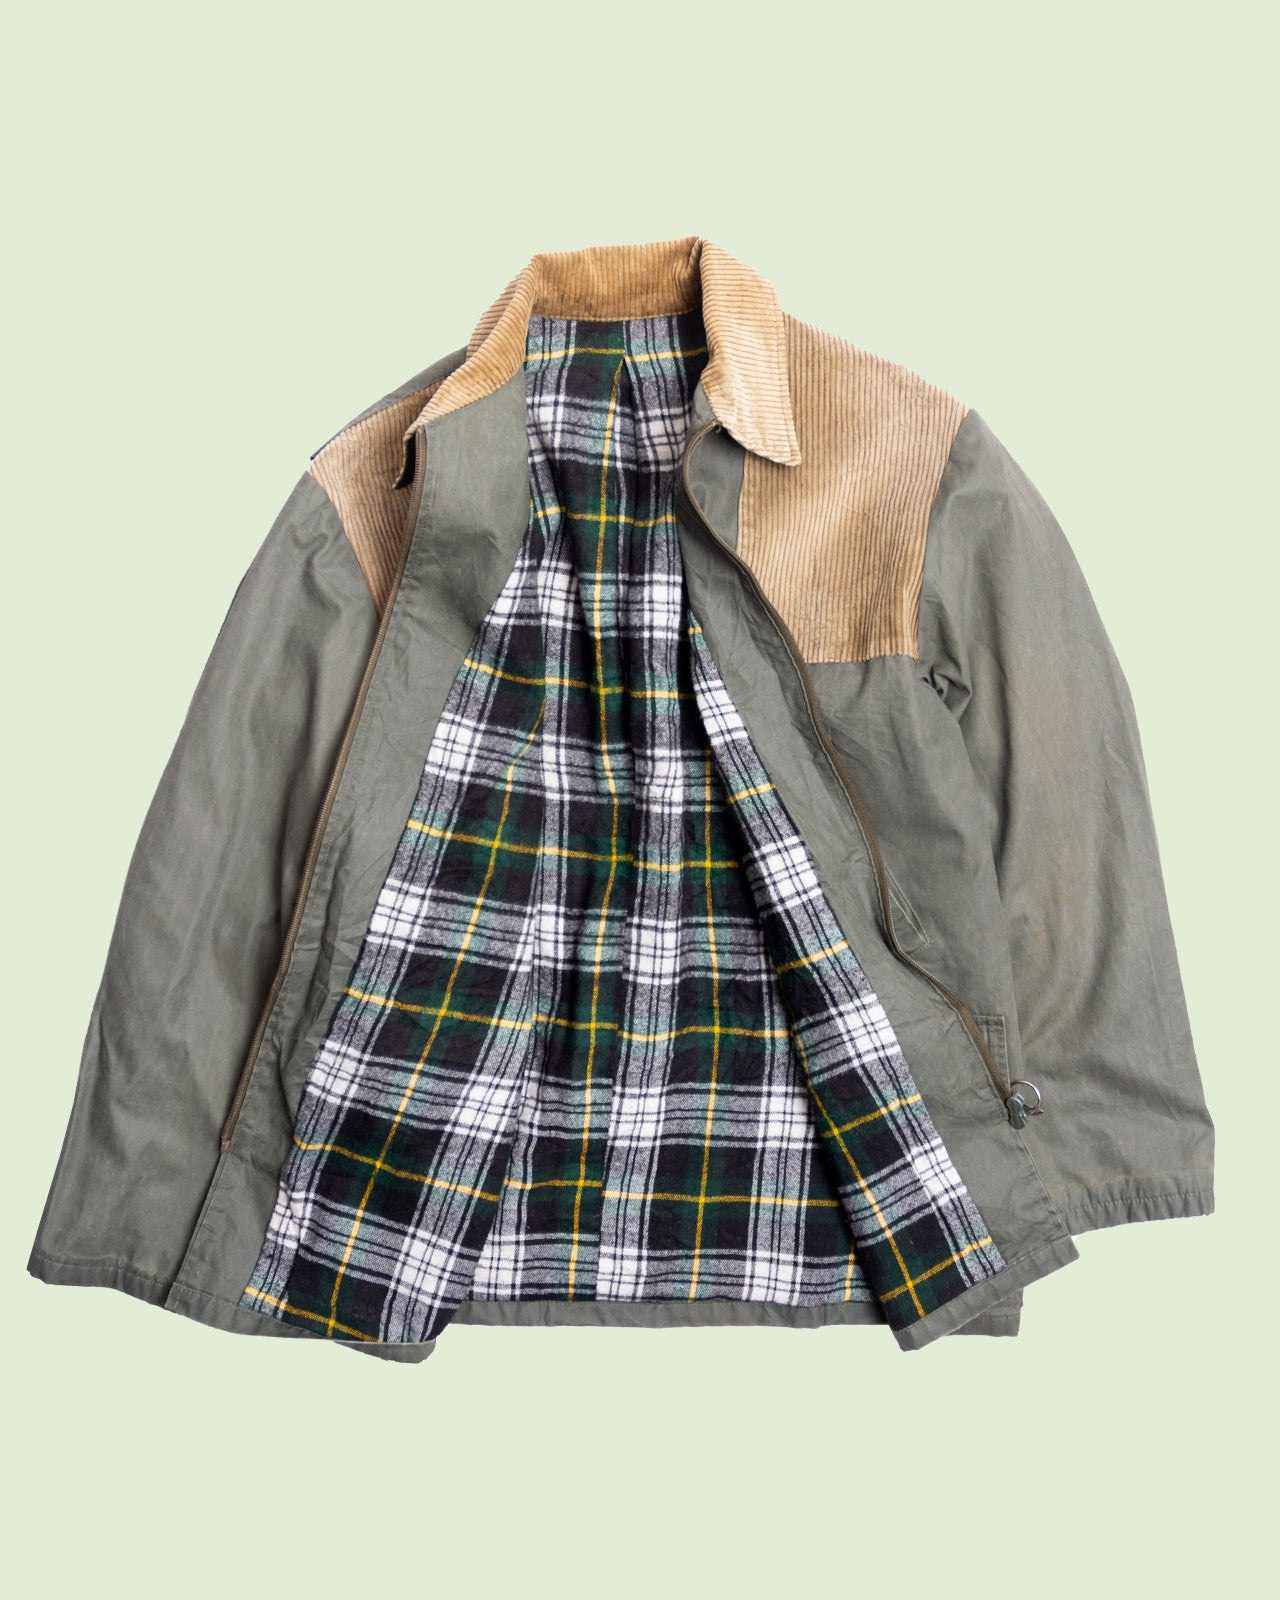 French Green Hunting Jacket (M)